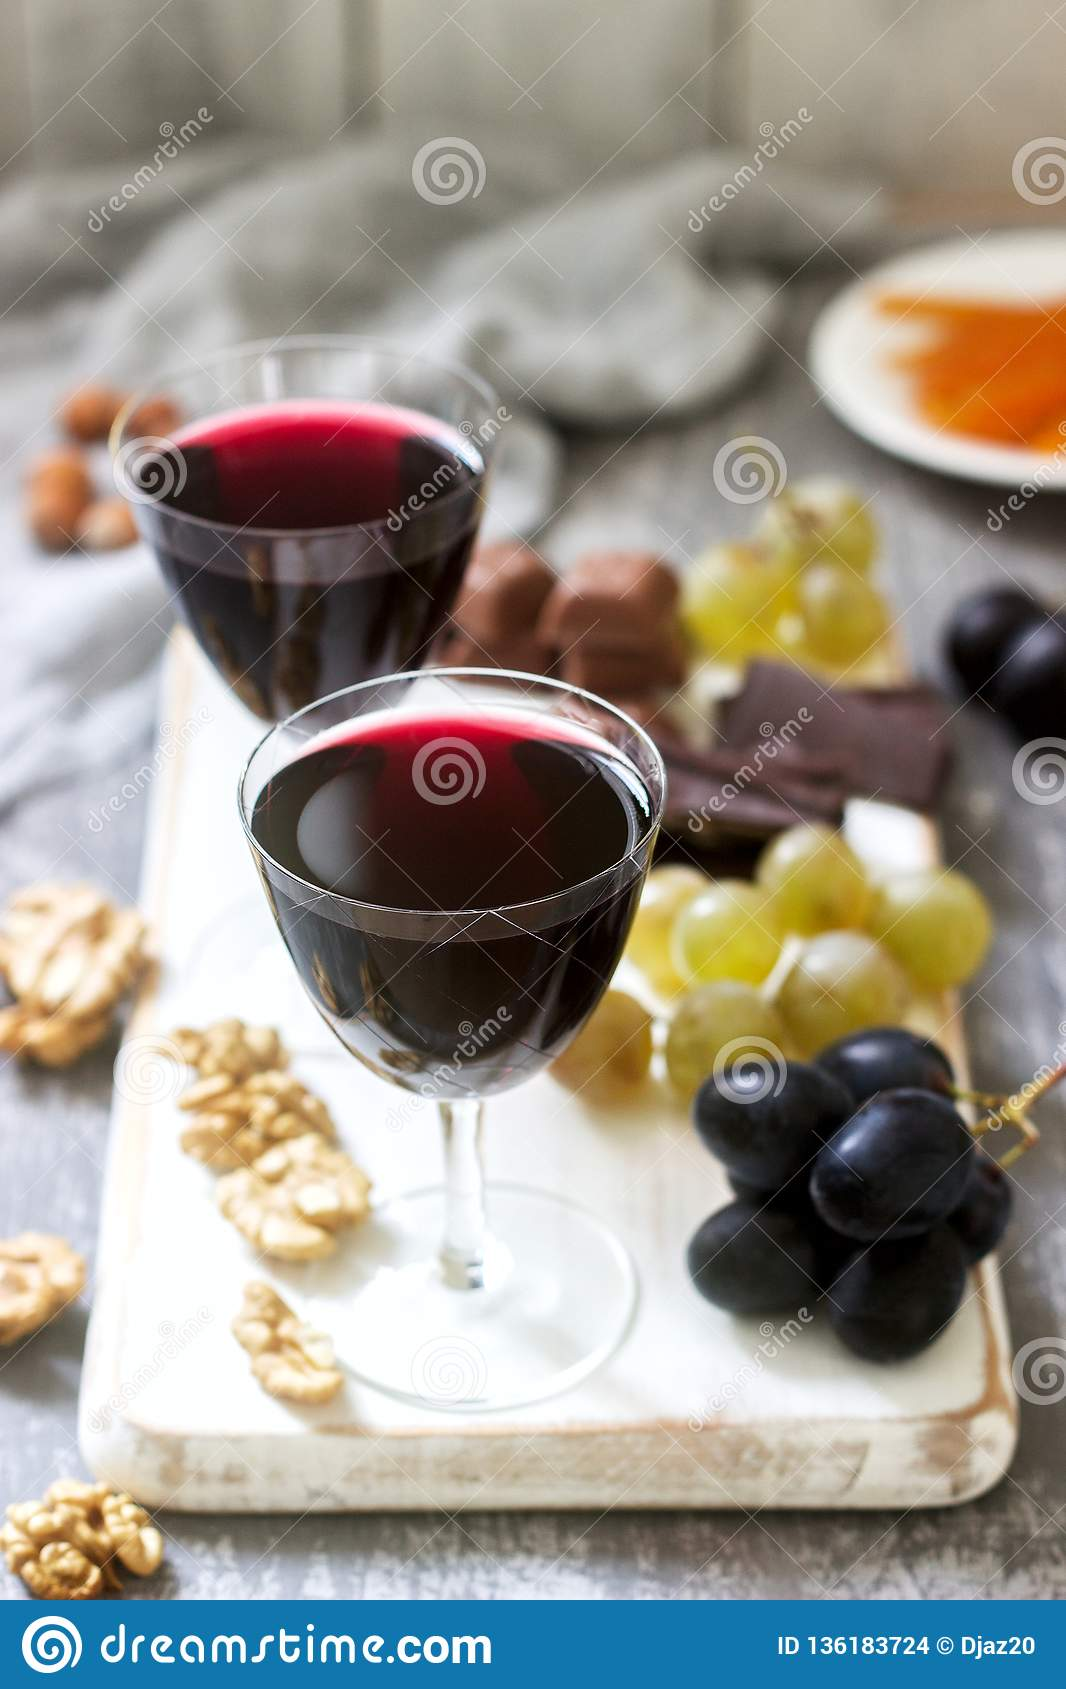 Creme de Cassis homemade liqueur served with grapes, nuts and chocolate. Rustic style.